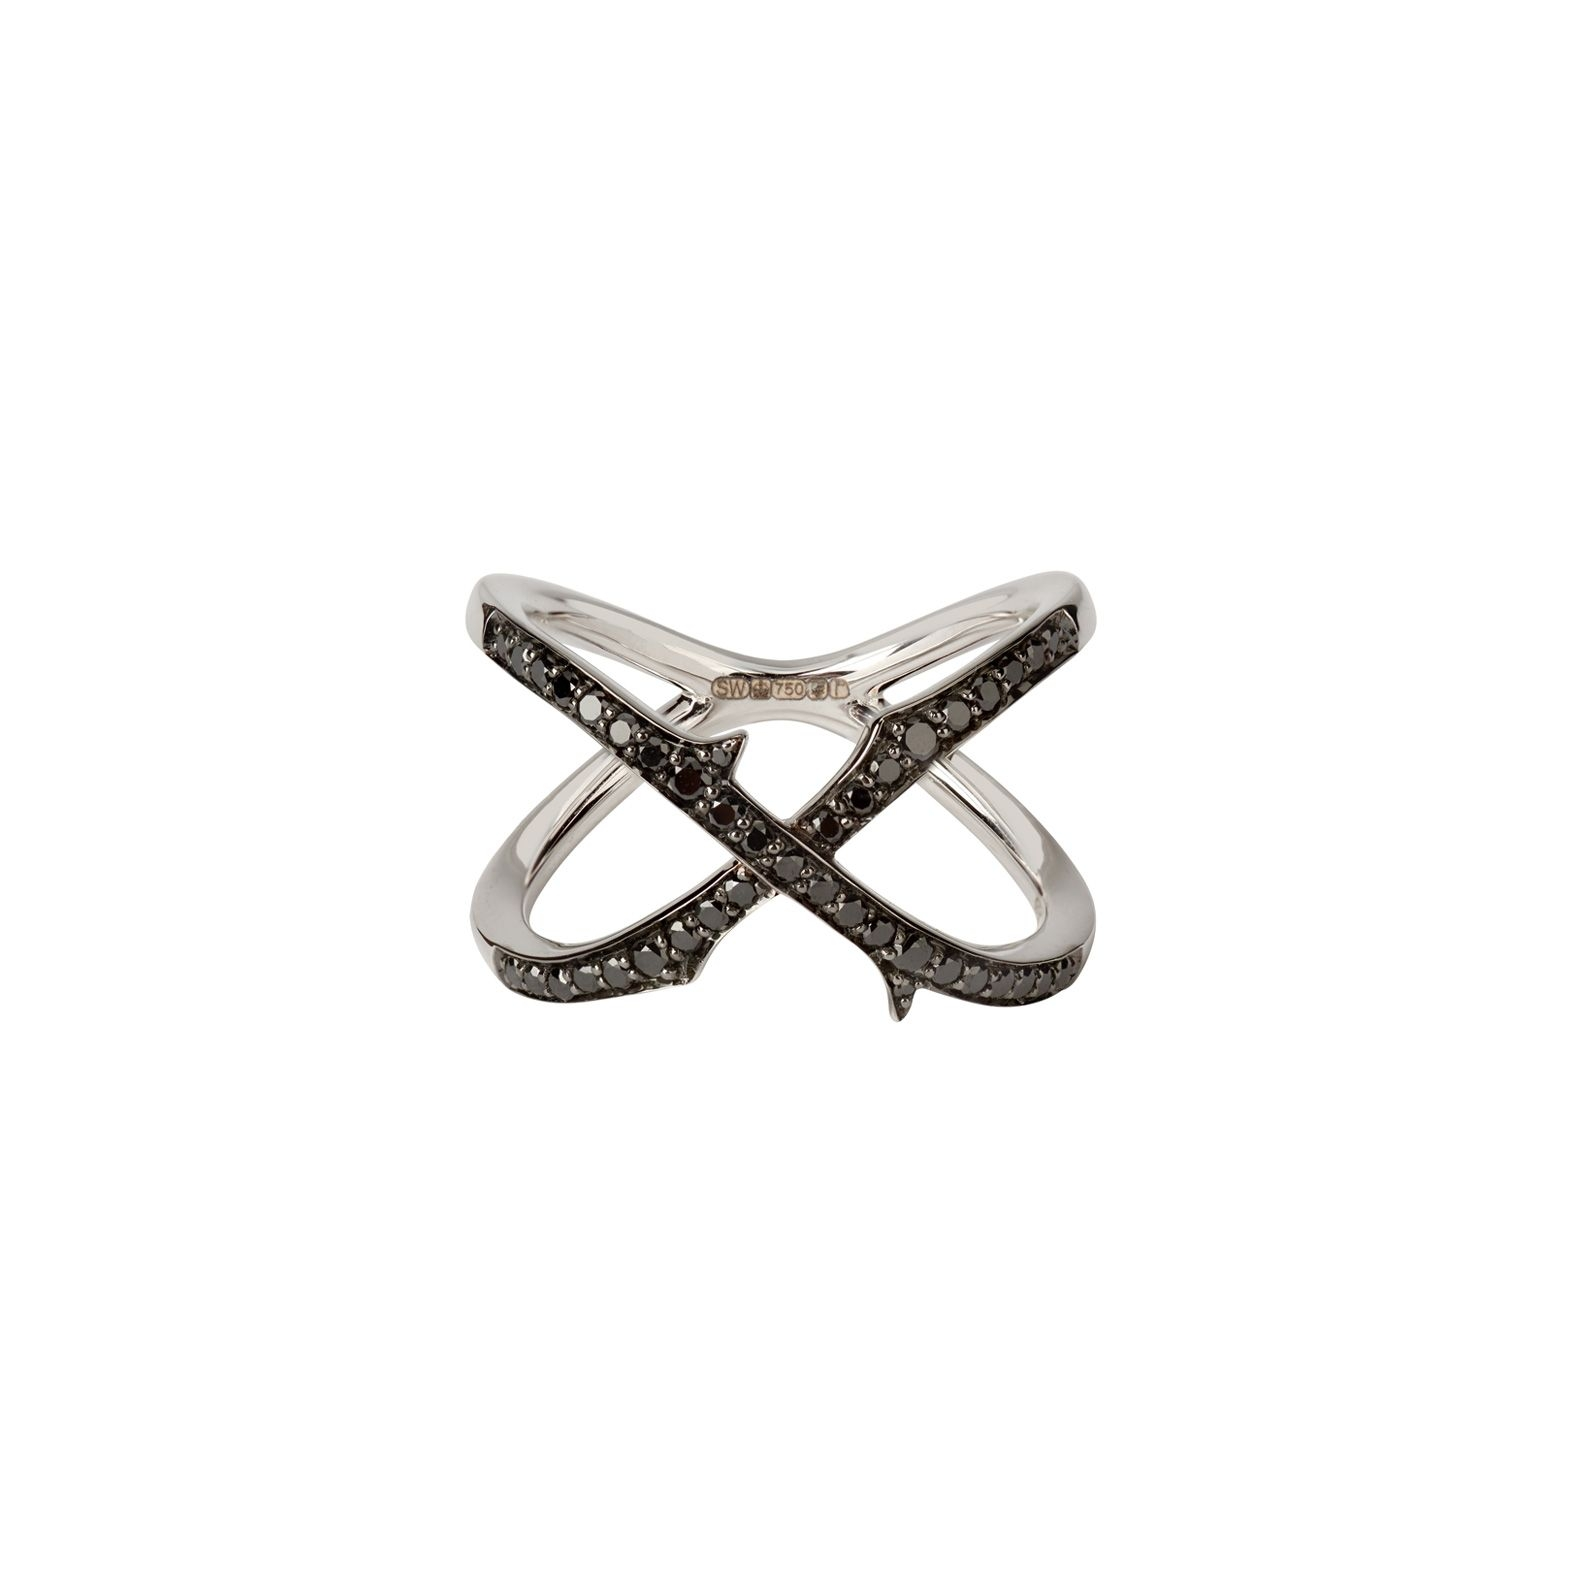 This Stephen Webster crossover ring from the Thorn collection showcases black and white diamonds crafted in 18k white gold.